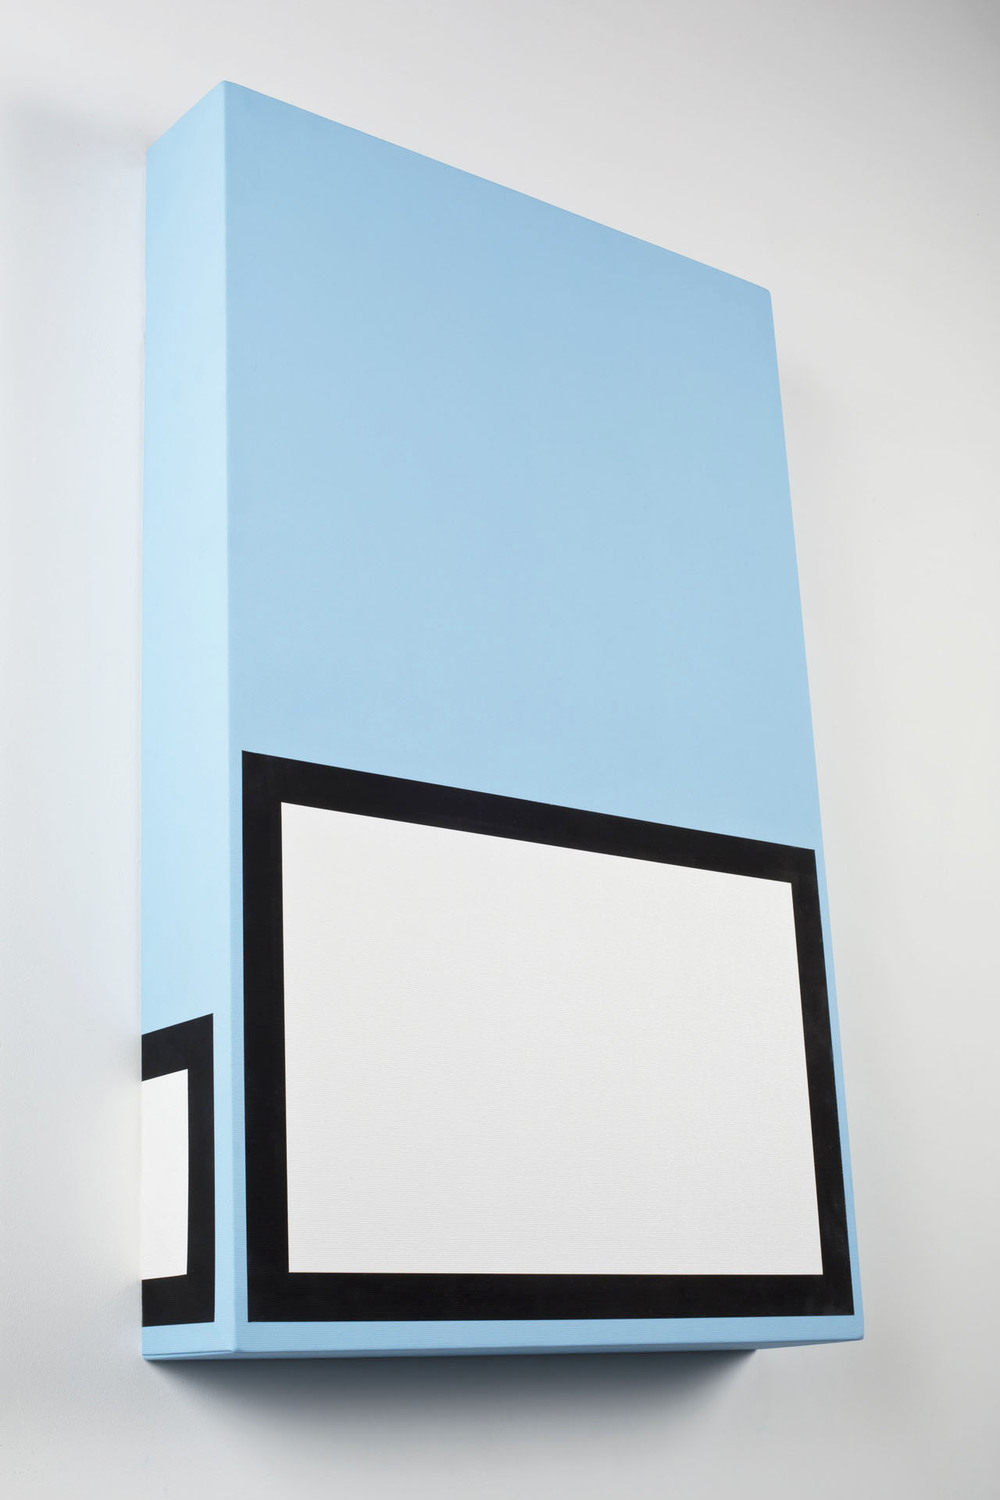 Luke Newton, King Size Camel Blue Painting Thrills, 2013, 80x50x10 - cm - Courtesy the artist and Rabouan Moussion Gallery Paris